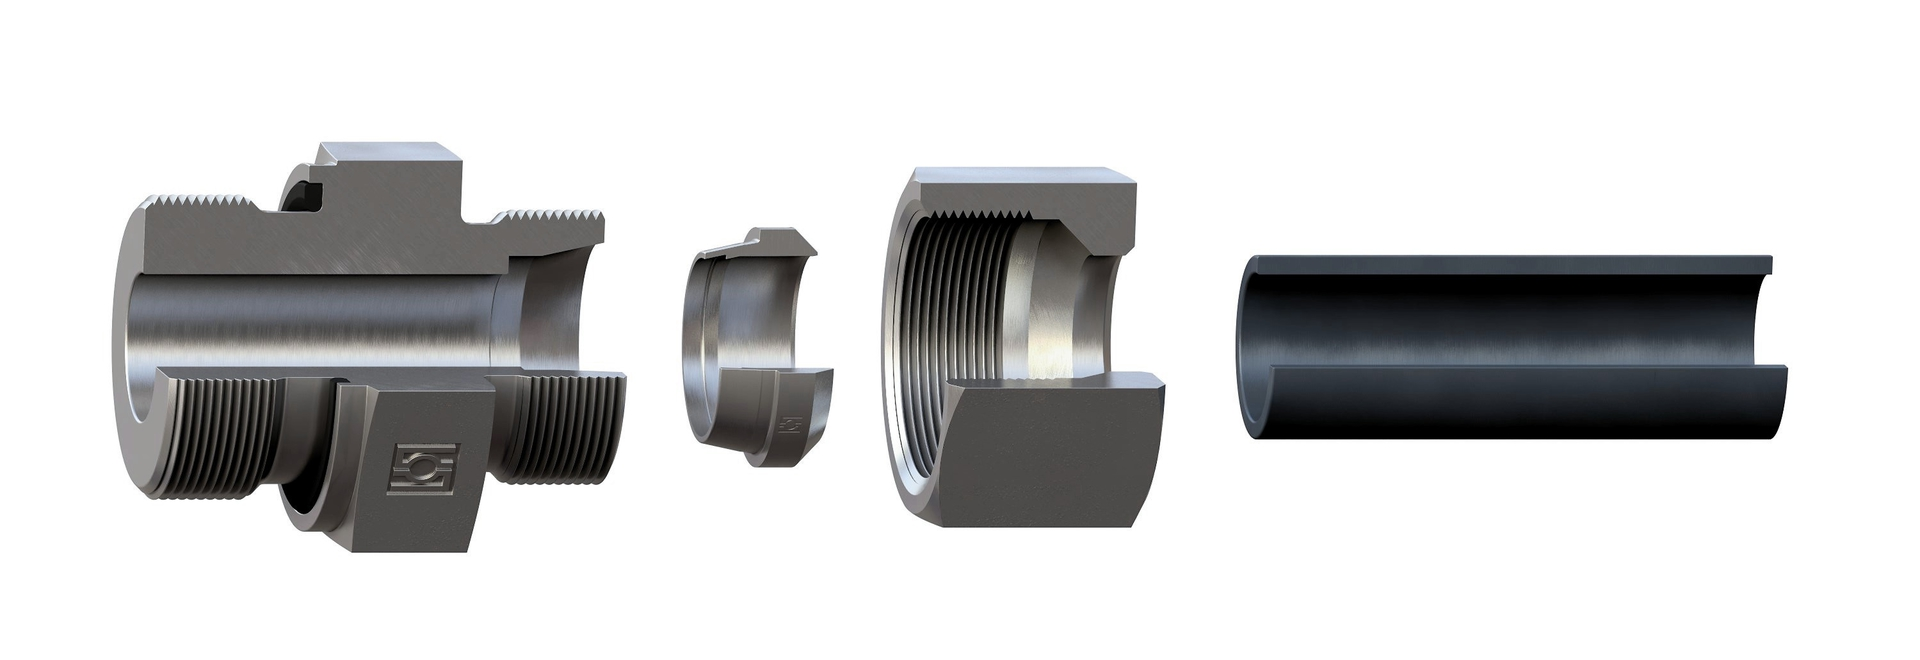 When the union nut is tightened, the two cutting edges of the cutting ring, arranged behind each other, cut into the tube creating a joint with the necessary positive locking/form locking connectio...